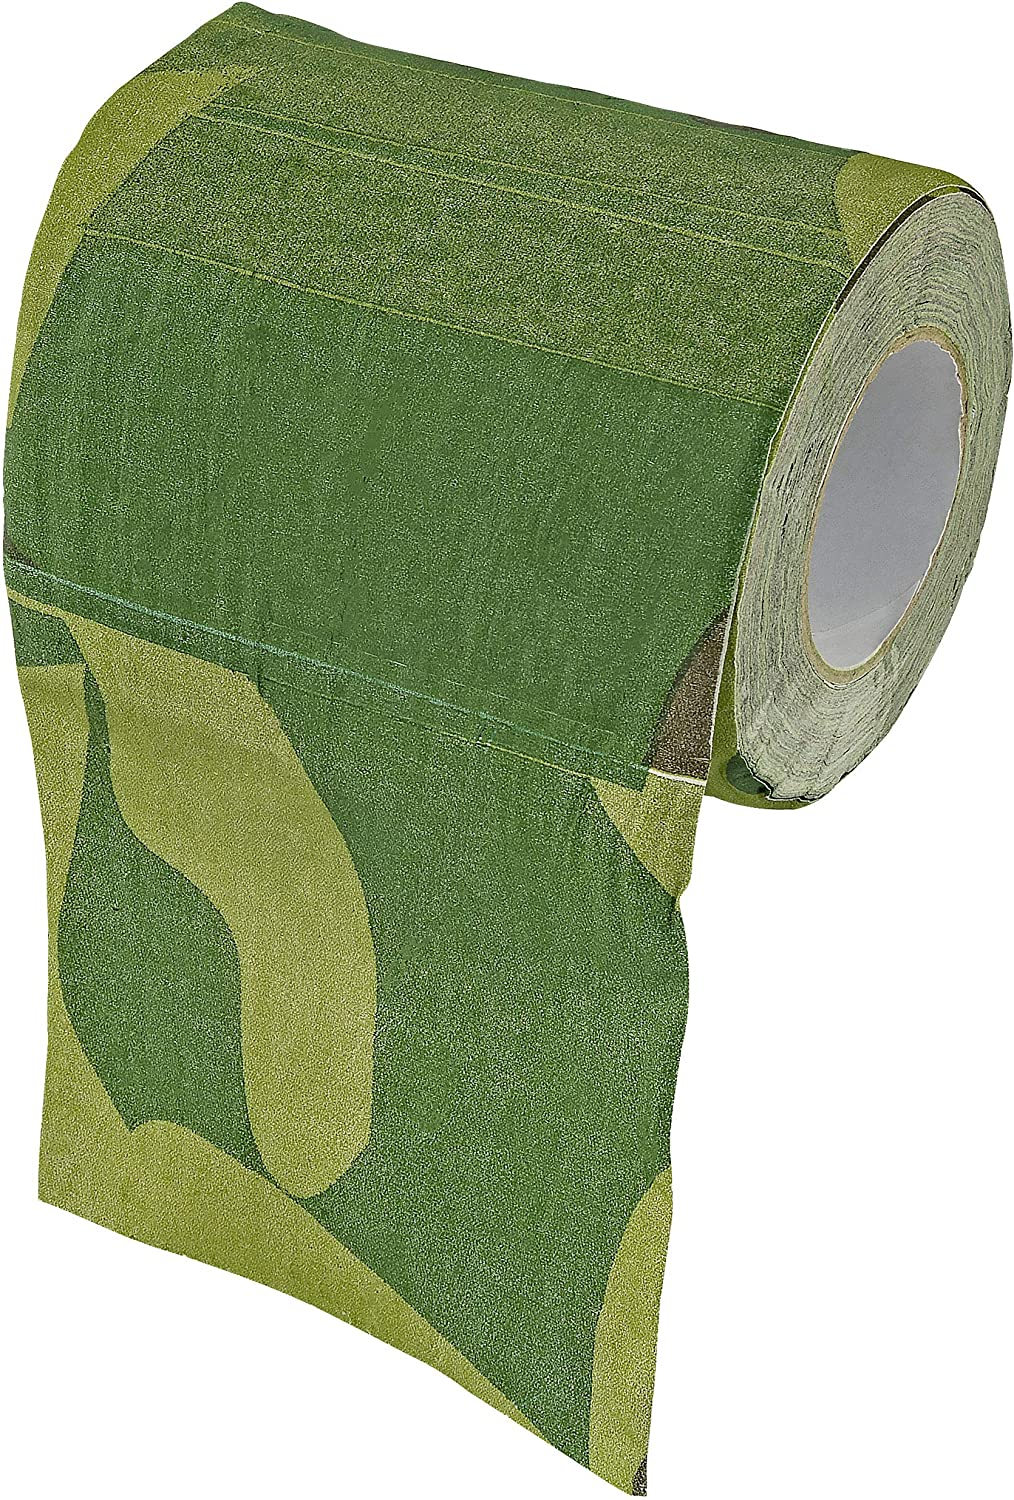 Fairly Odd Novelties Camouflage Novelty Toilet Paper